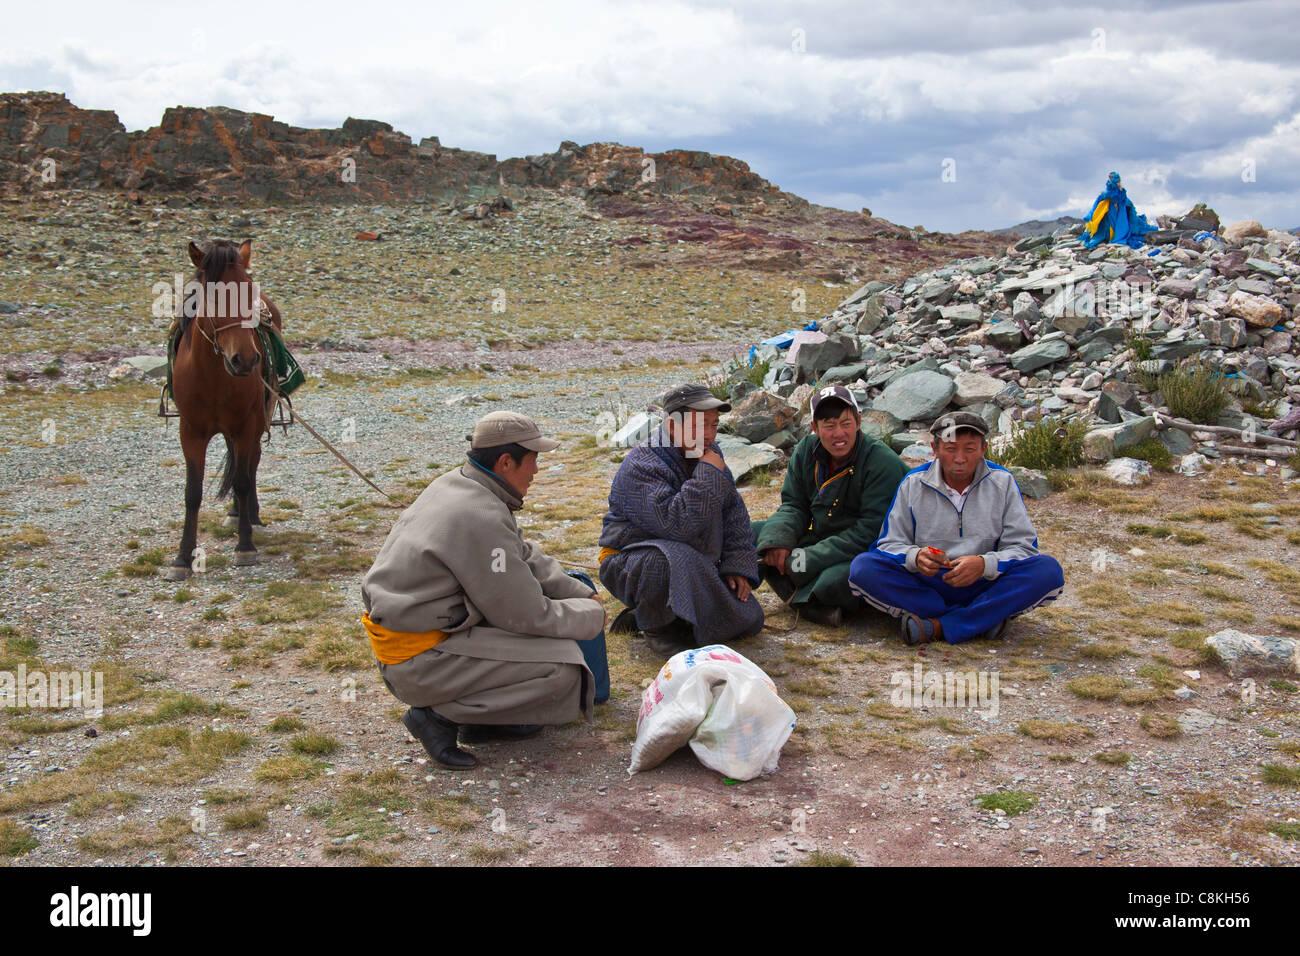 A group of Mongolian nomads taking a break in Mongolia. - Stock Image